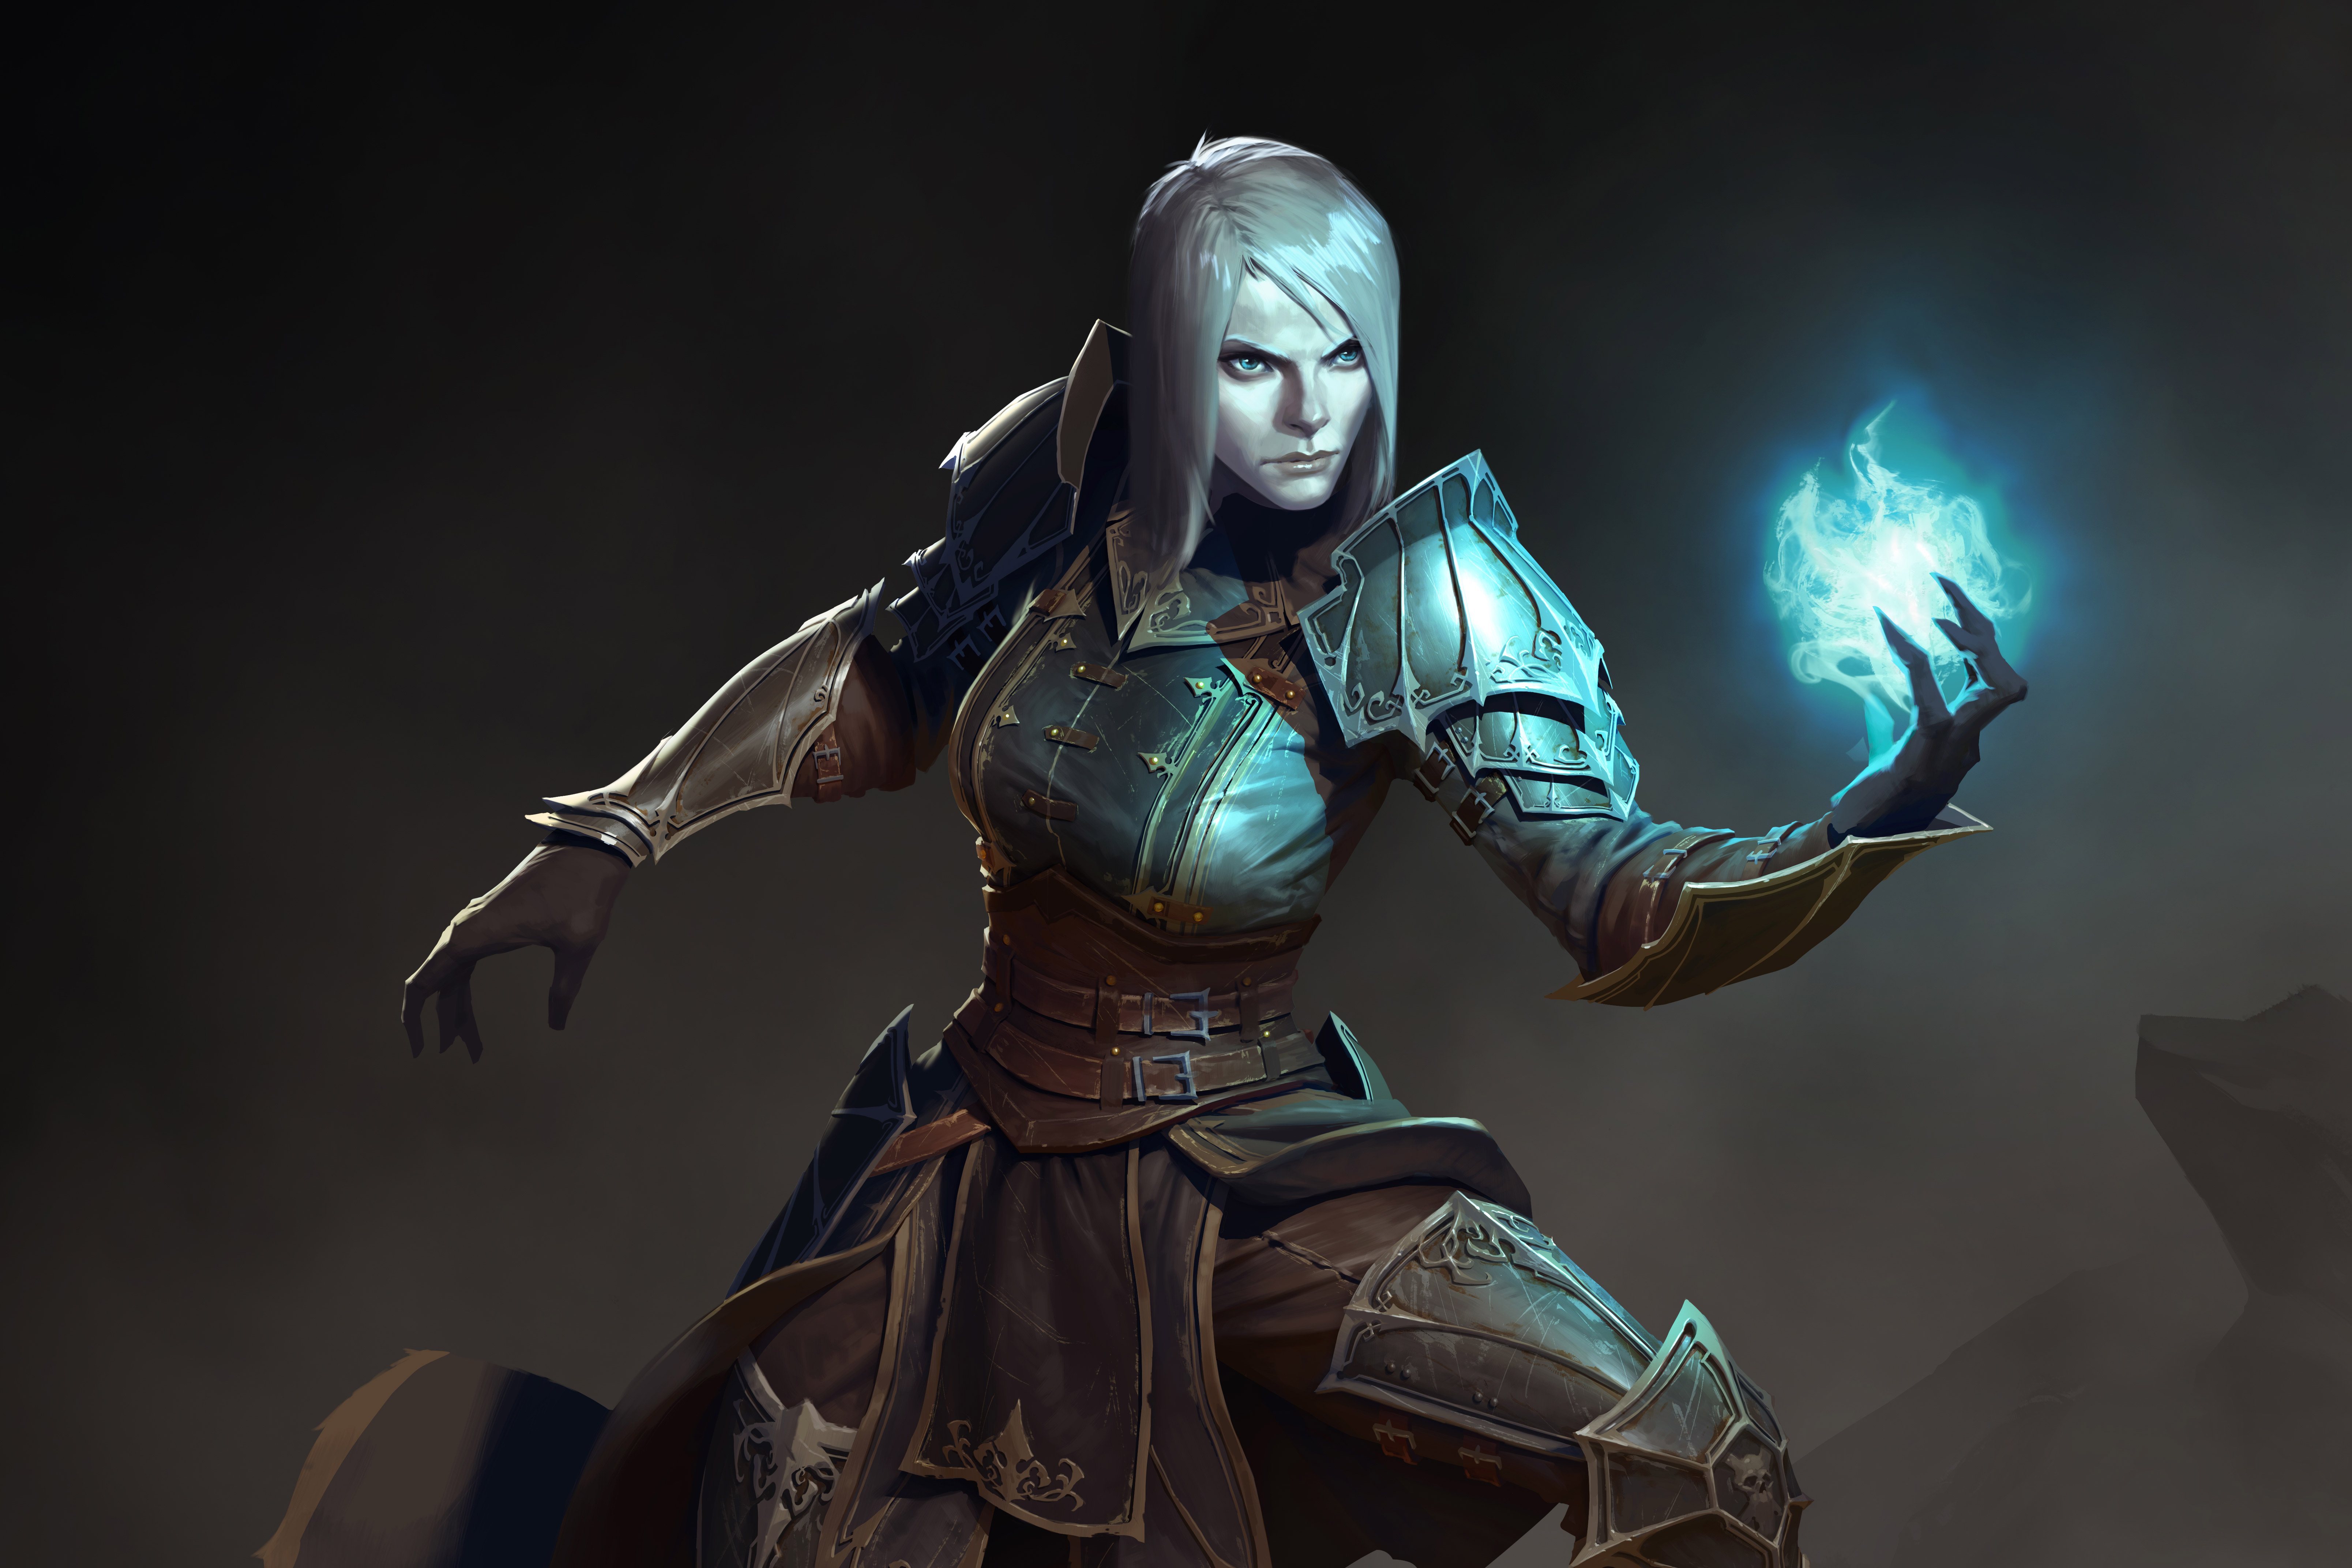 1280x1024 Female Necromancer Diablo Iii 1280x1024 Resolution Hd 4k Wallpapers Images Backgrounds Photos And Pictures